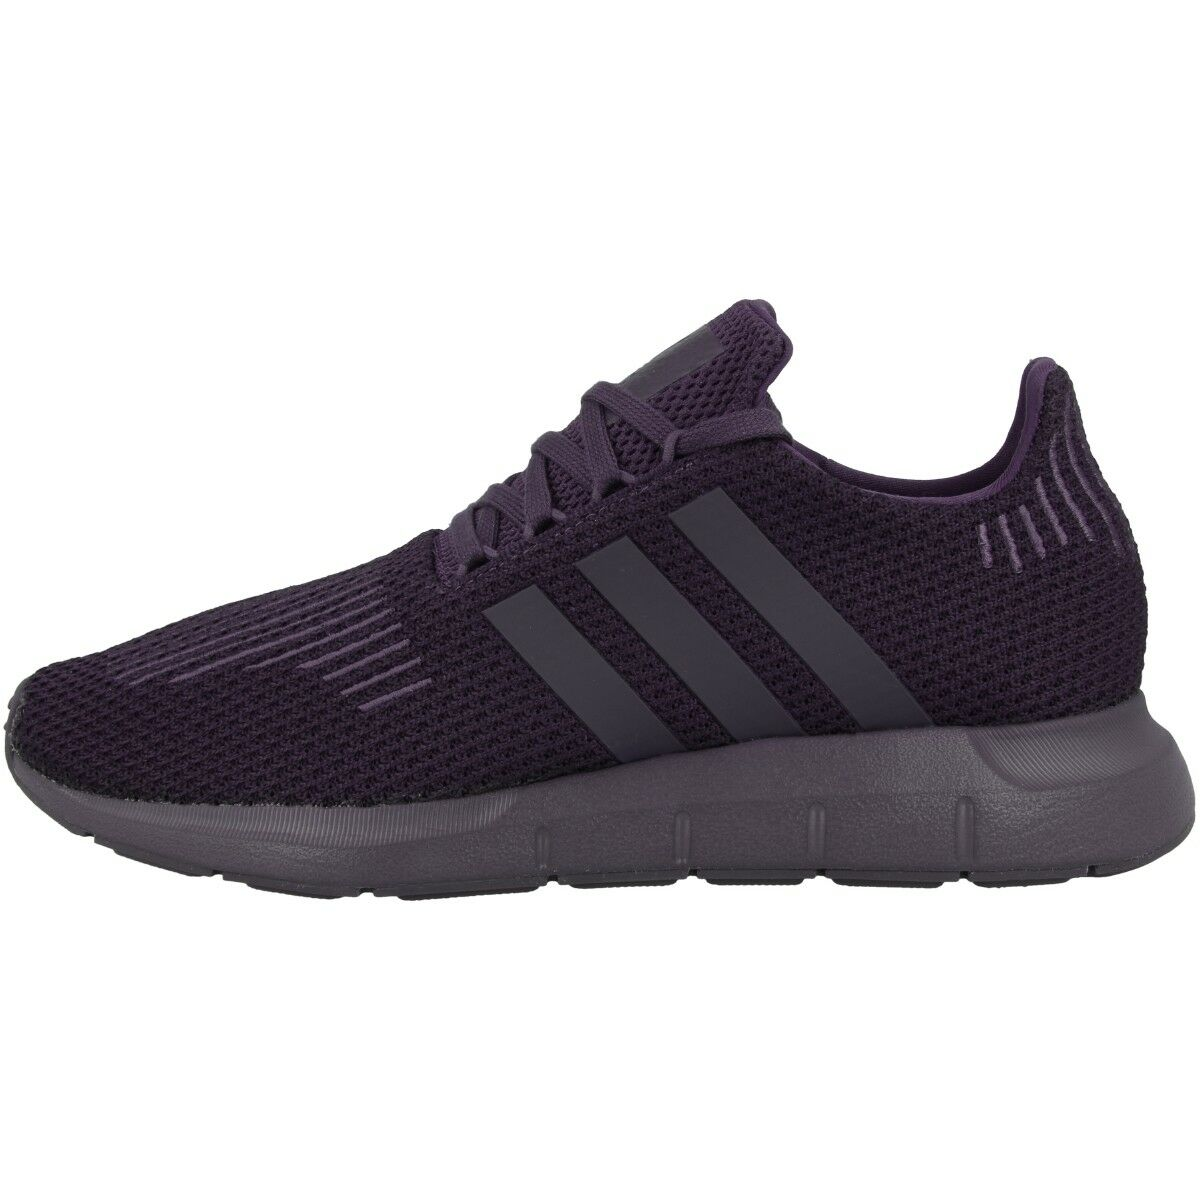 Adidas swift shoes race shorts ladies originals trainers sport trail